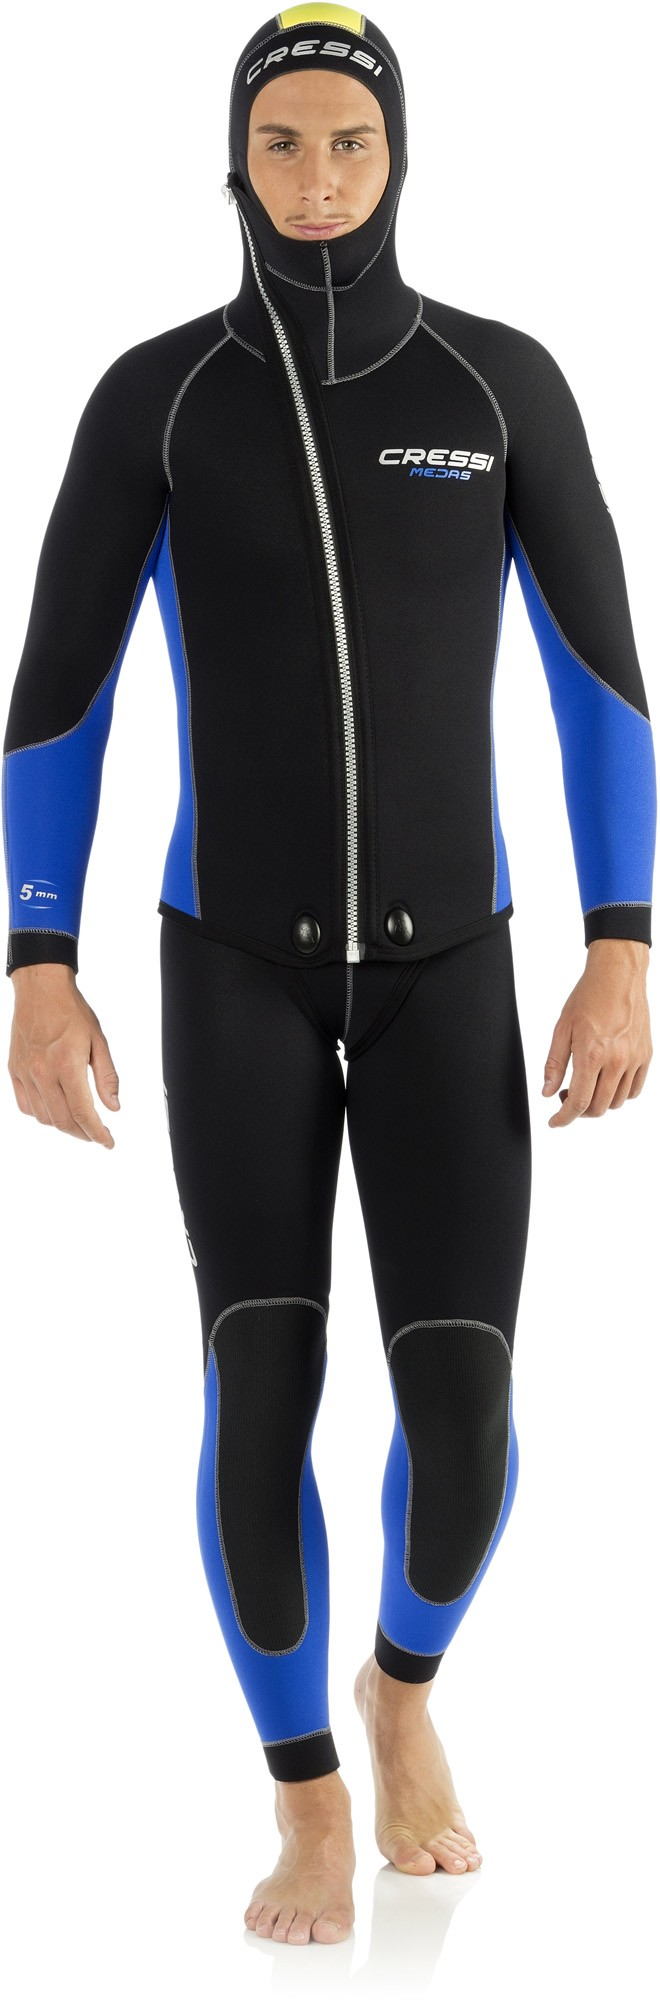 Suit Two Cressi 5 Mm Front Piece Neoprene Wetsuits W2YH9IED